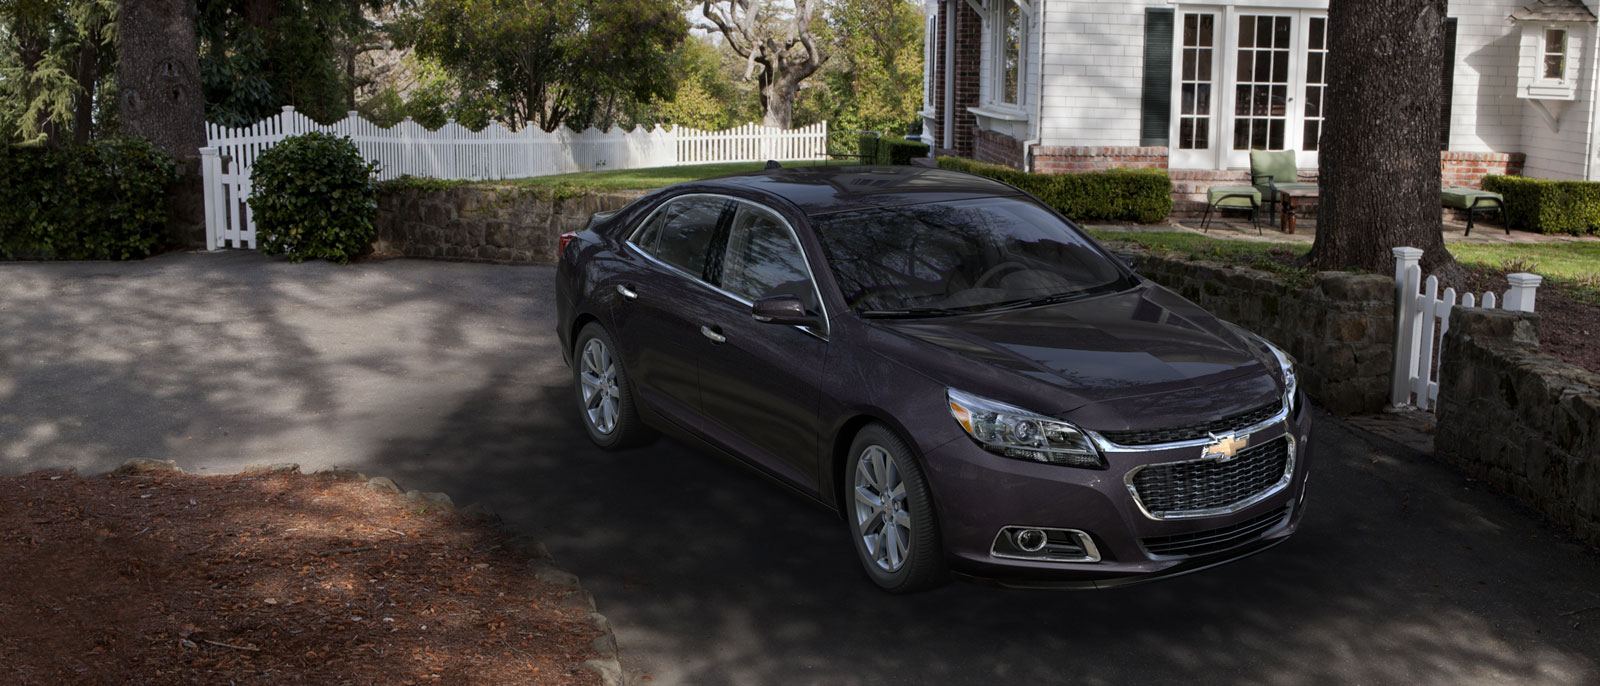 2015 chevrolet malibu troy schenectady depaula chevrolet. Black Bedroom Furniture Sets. Home Design Ideas